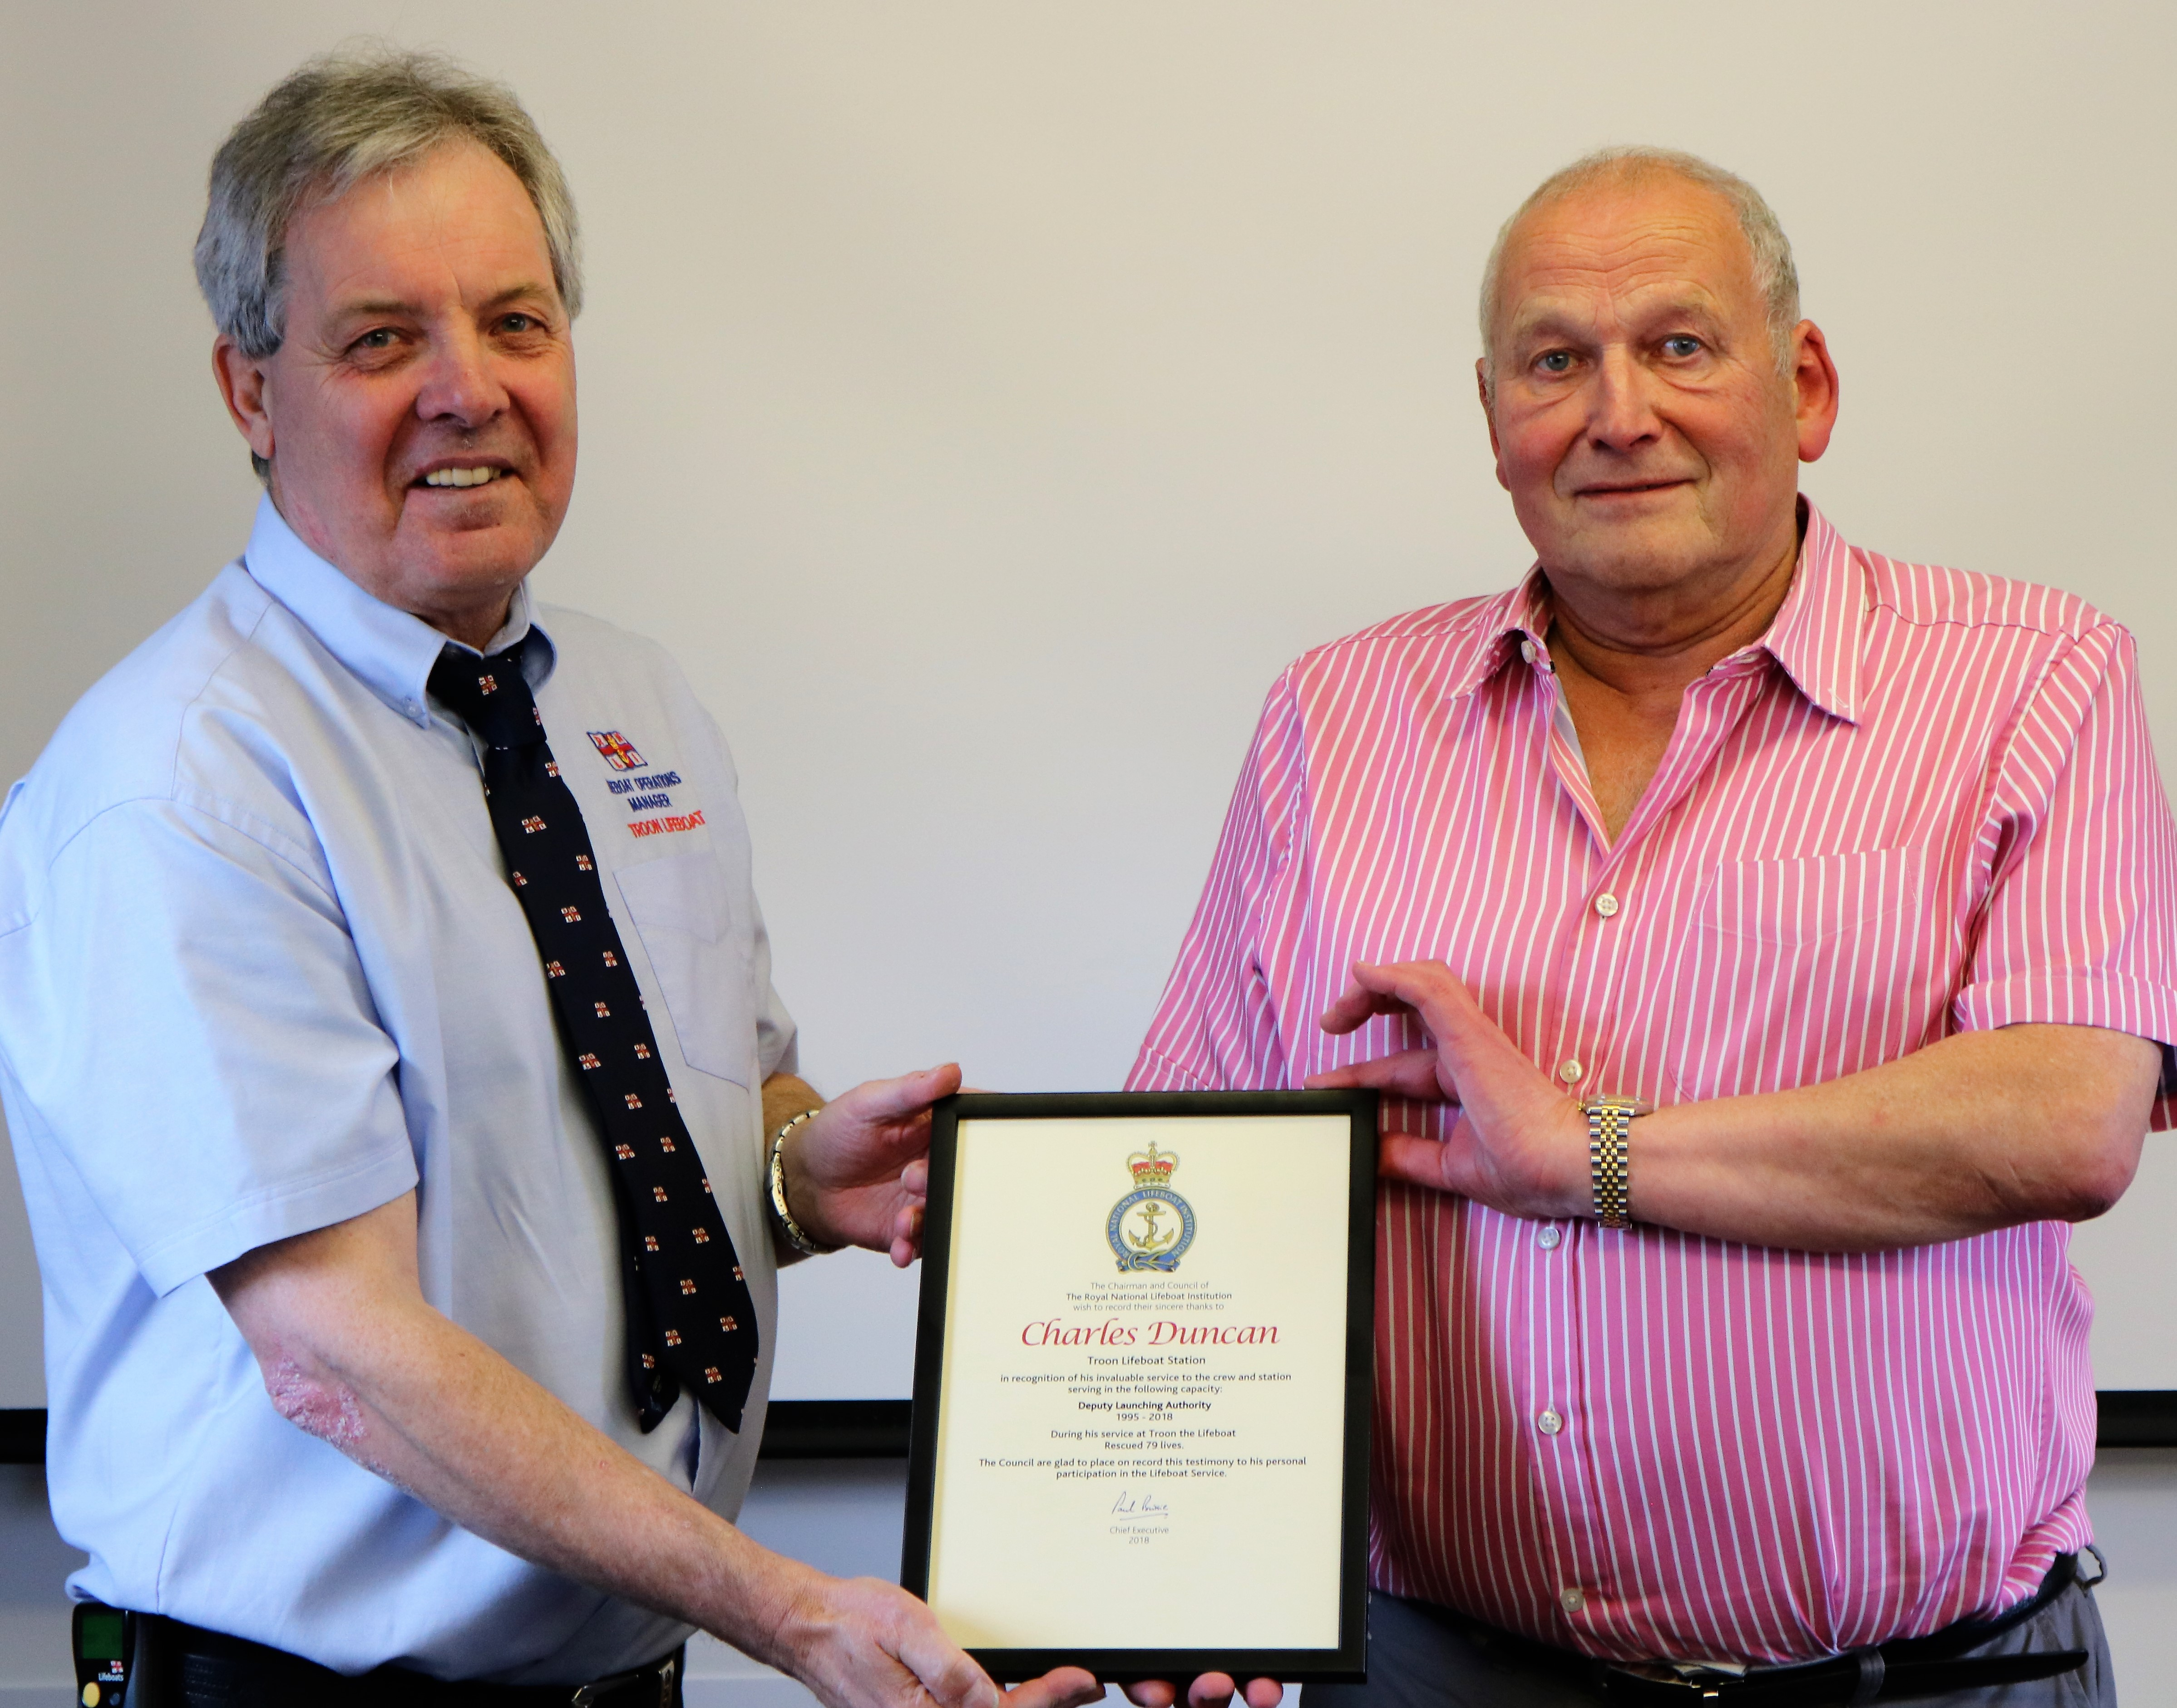 Pictured is Troon Lifeboat Operations Manager Jim Redmond (left) presenting the leaving certificate to Charlie Duncan